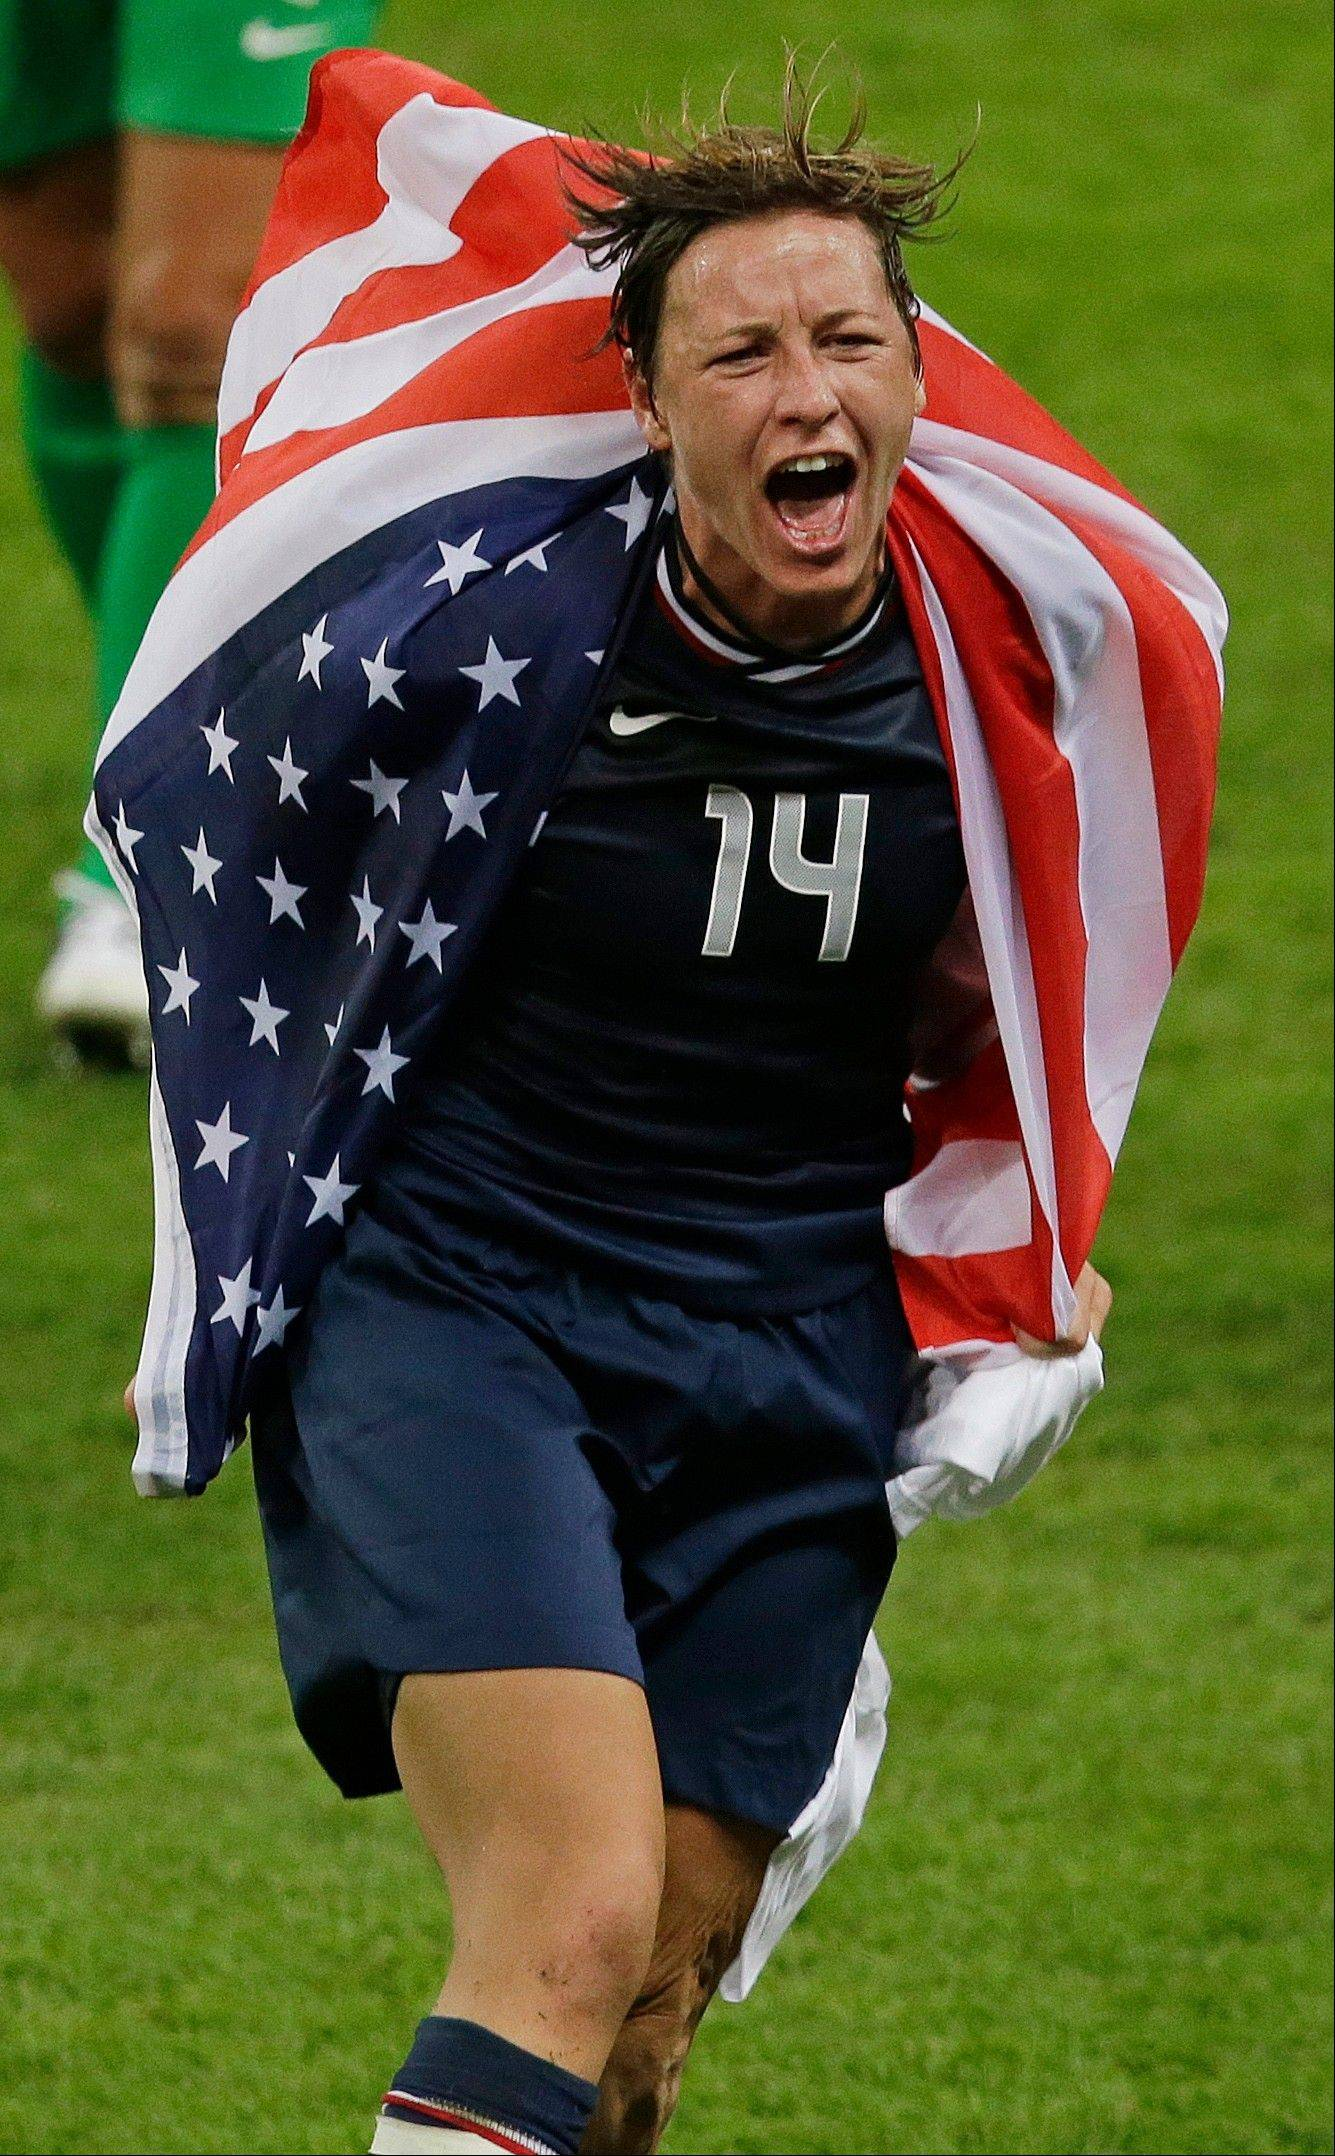 United States' Abby Wambach celebrates after winning the women's soccer gold medal match against Japan at the 2012 Summer Olympics, Thursday, Aug. 9, 2012, in London. (AP Photo/Andrew Medichini)